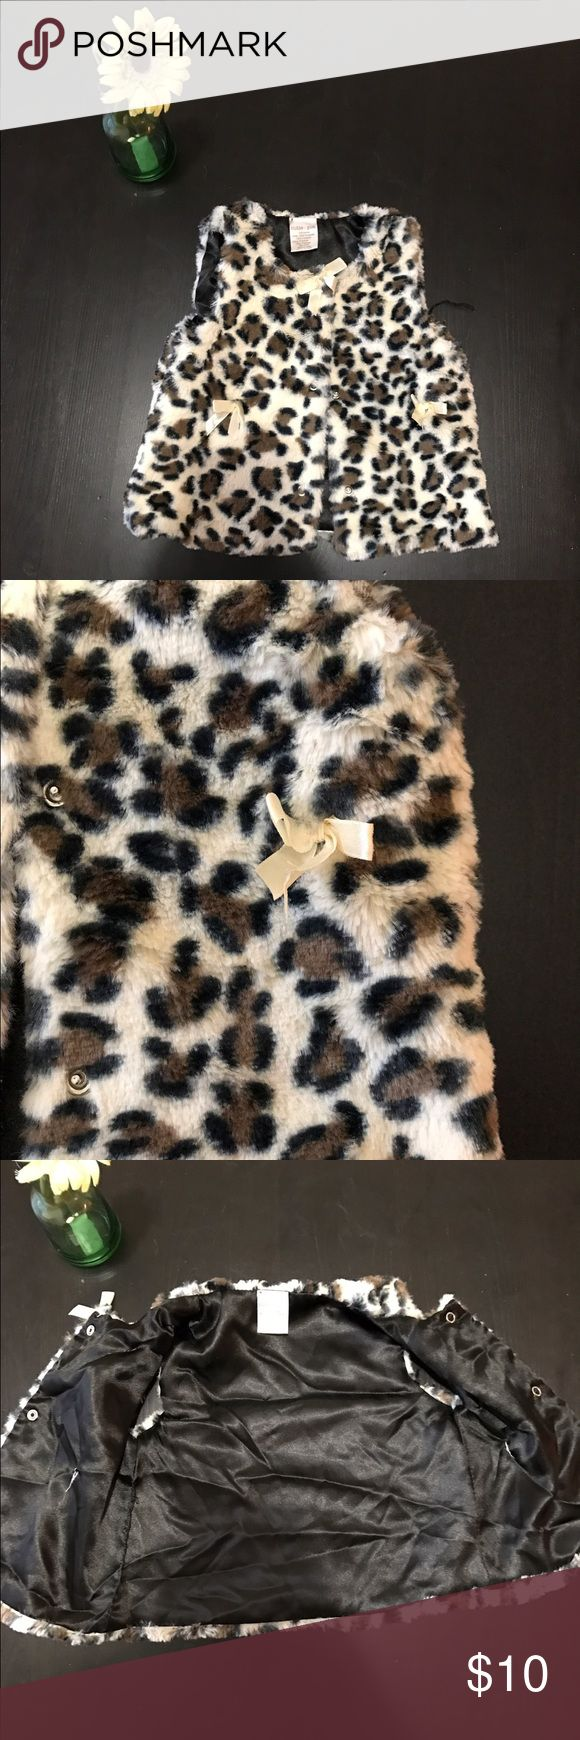 Crib for sale kijiji toronto - Cutie Pie Baby Girls Animal Print Plush Jacket Is A Beautiful Little Jacket Super Soft